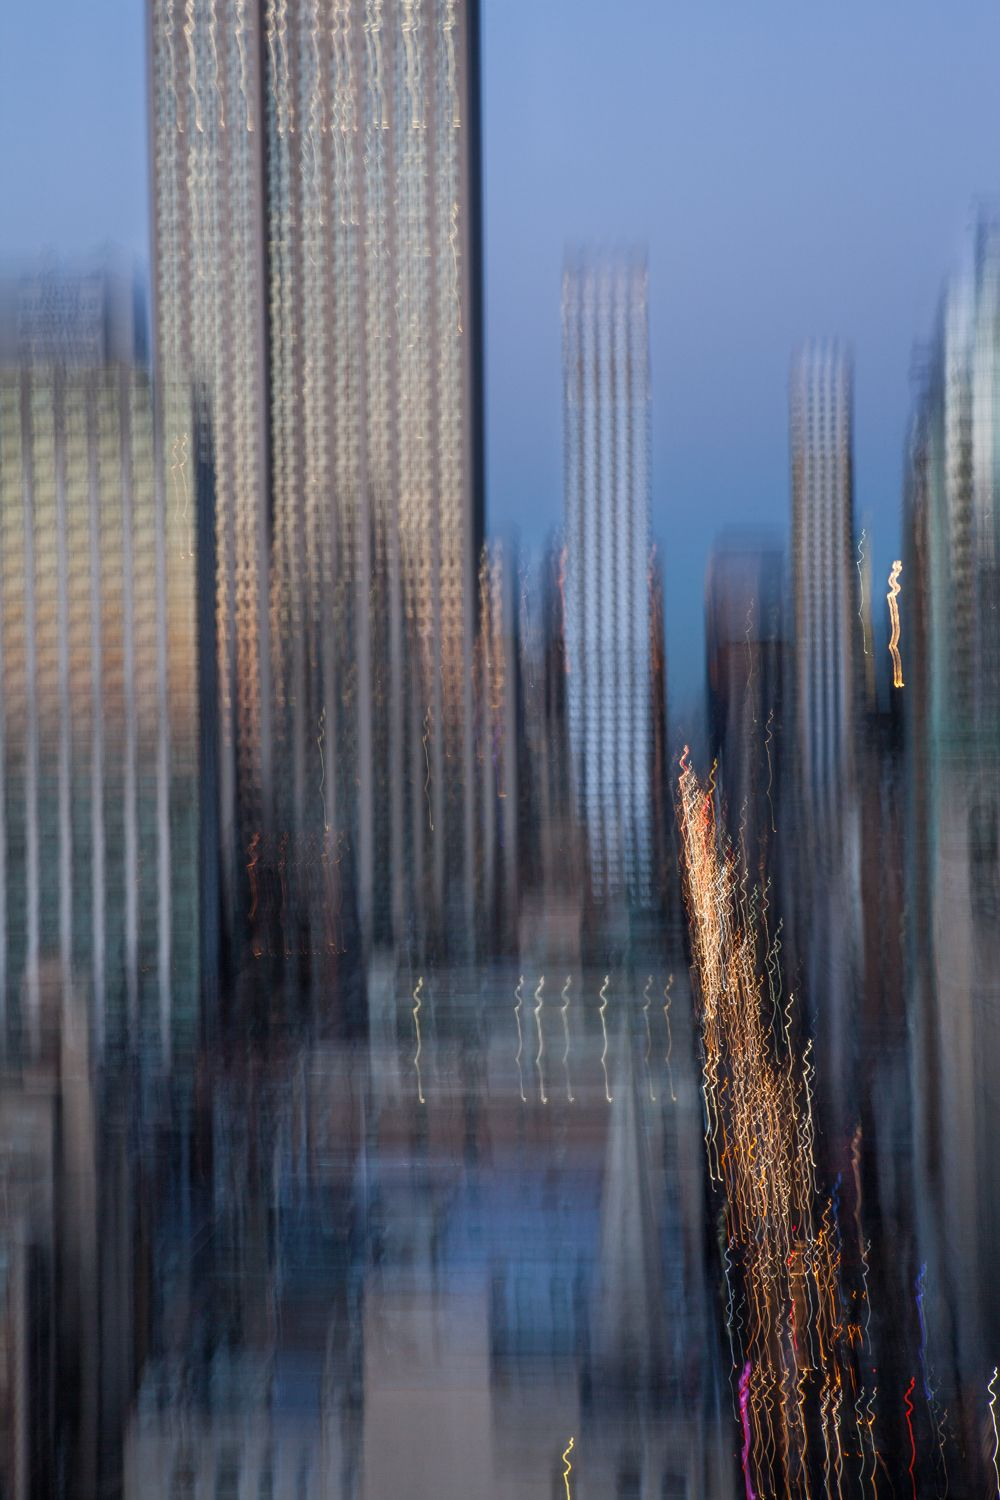 New York Dream 19,Xavier Dumoulin,Photographie